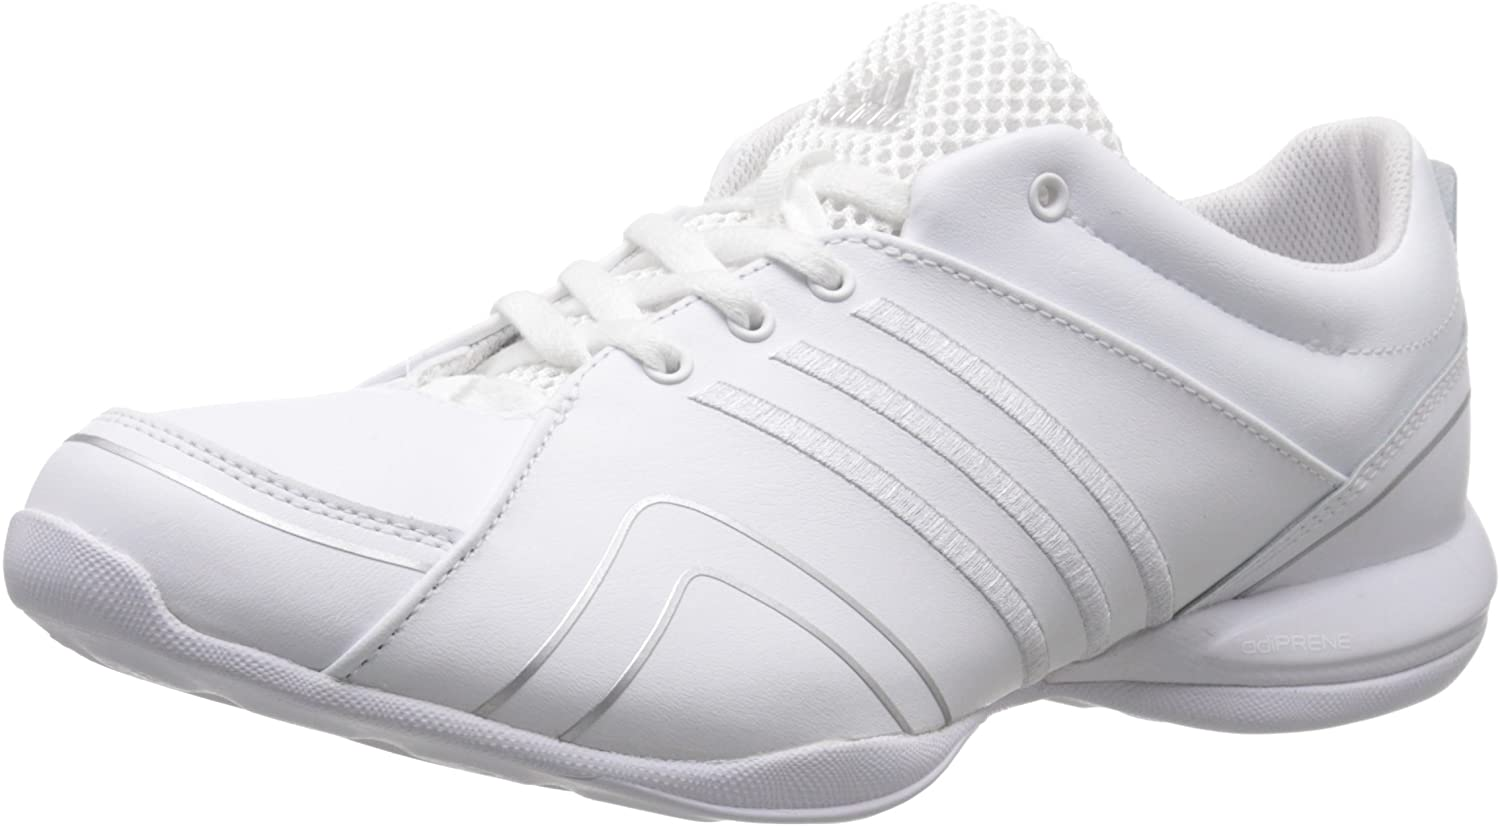 adidas Womens Cheer Flyer Cross-Trainer Shoe